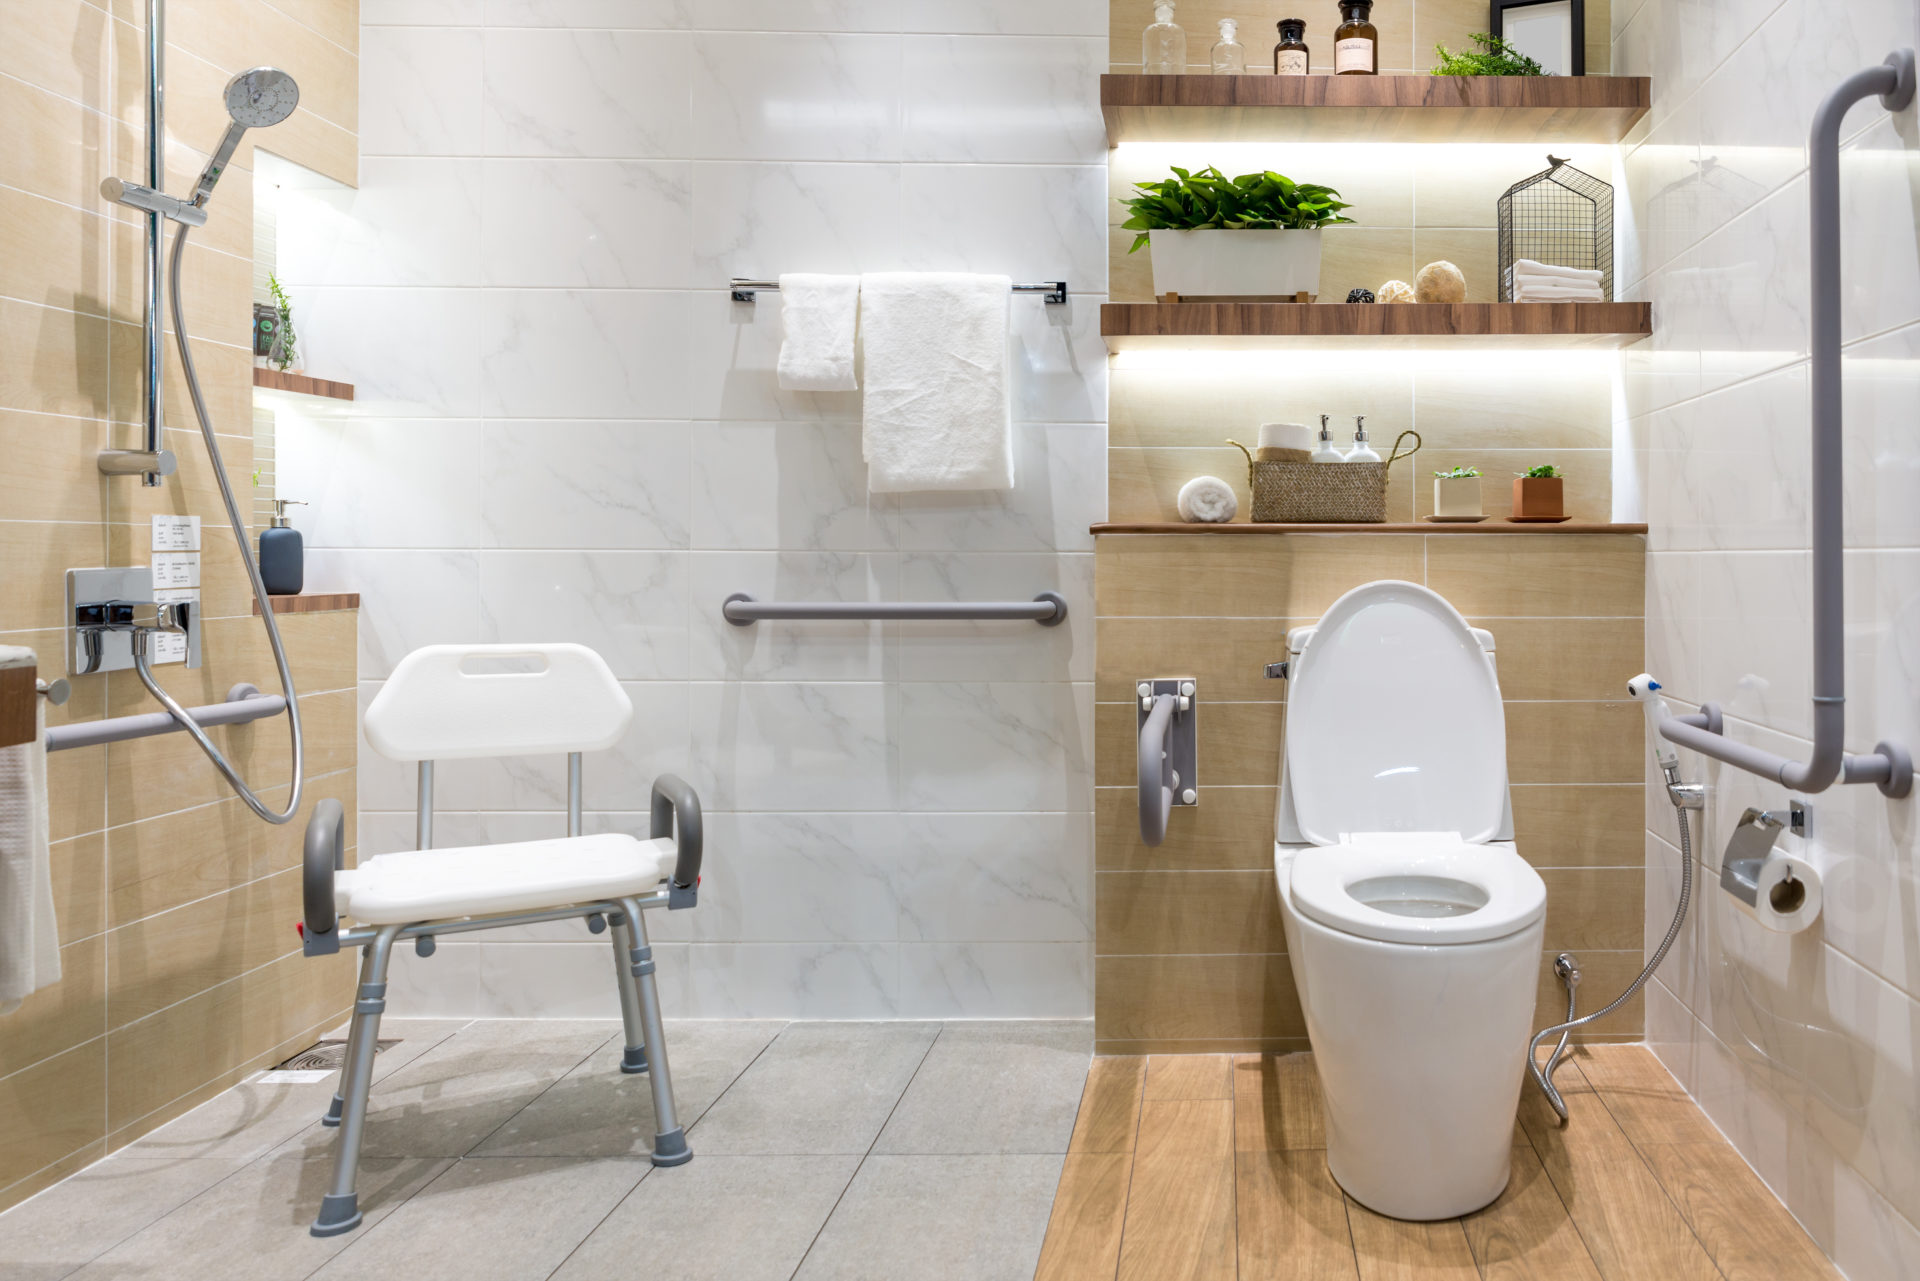 10 Ways to make your bathroom safer for seniors